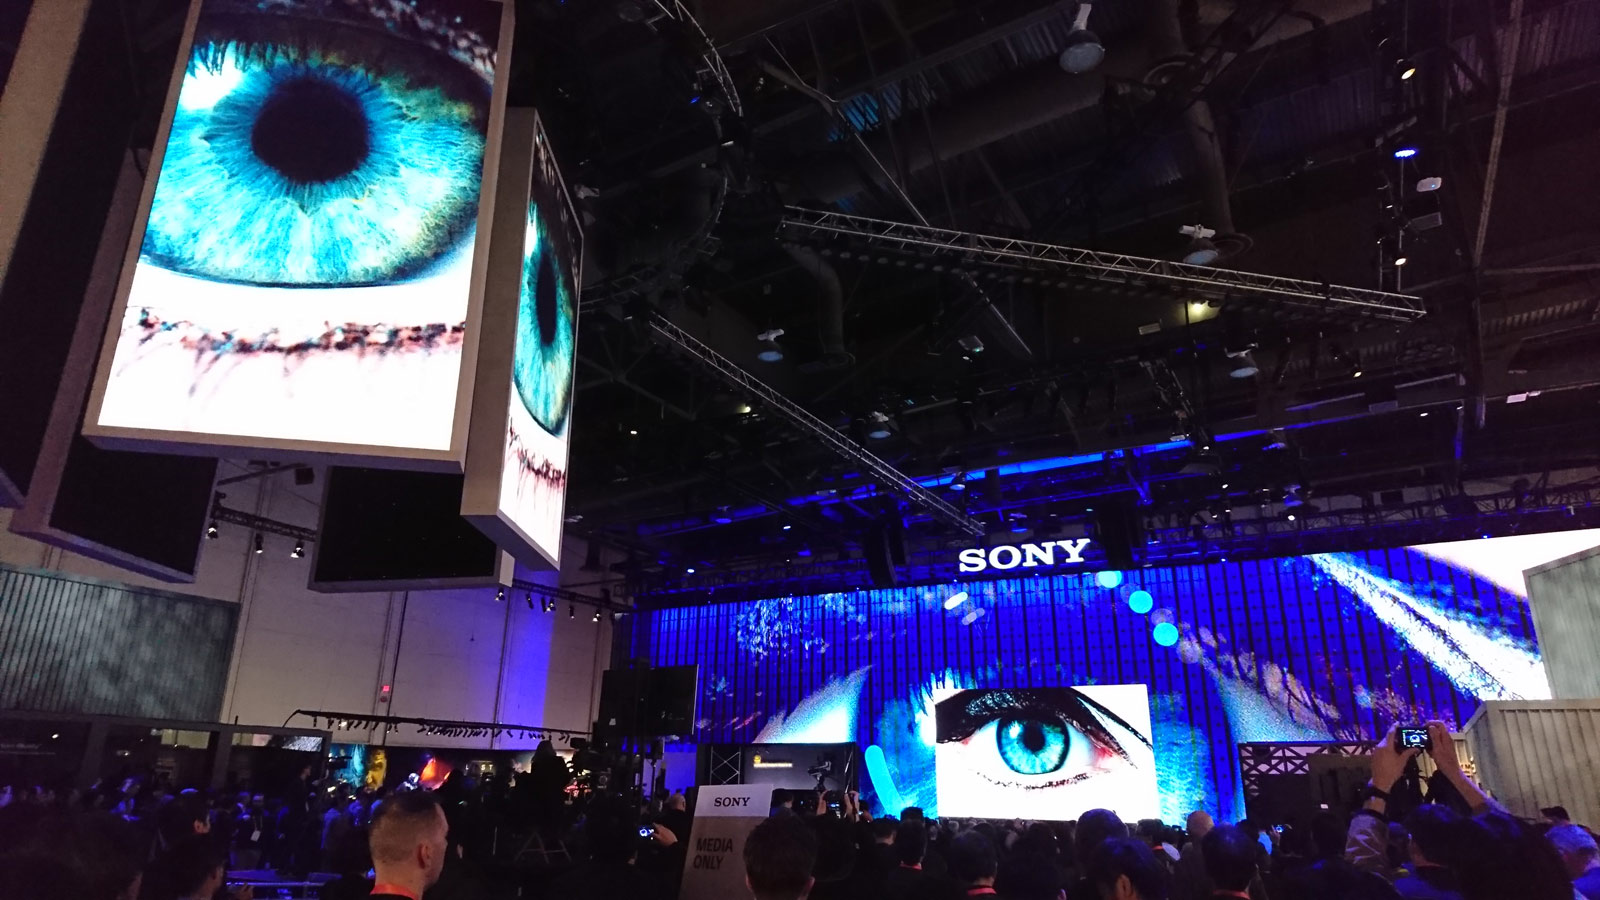 SONY at CES Photo by - Mark Woudama